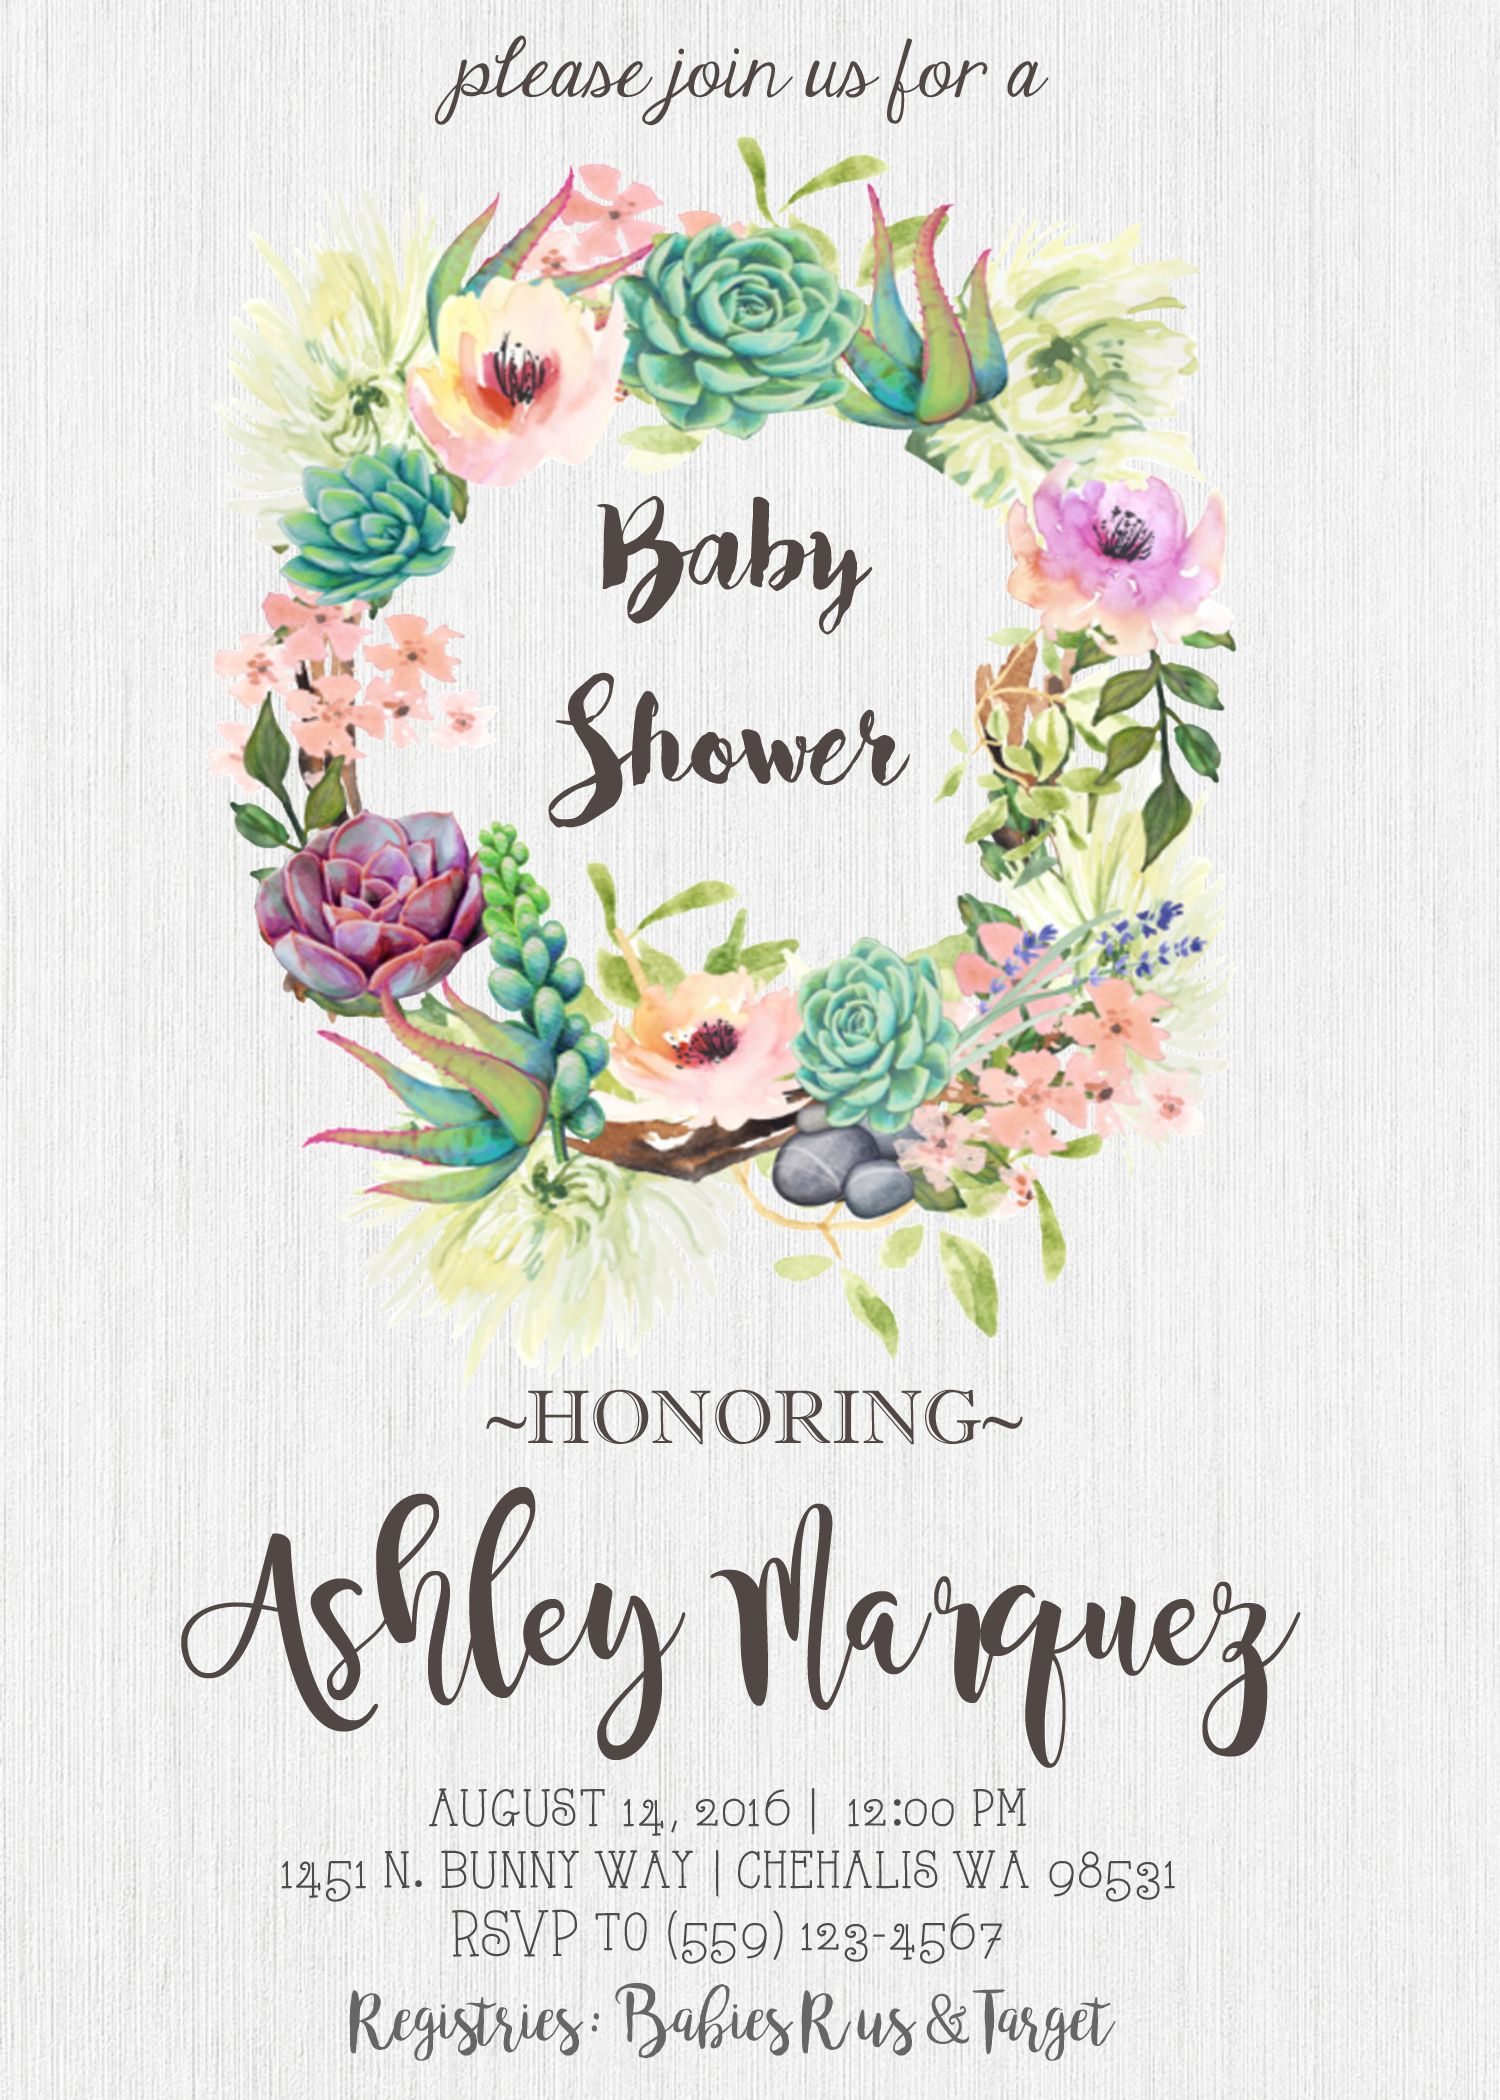 Baby Shower Invitation Watercolor Flowers Succulents Pink Peach